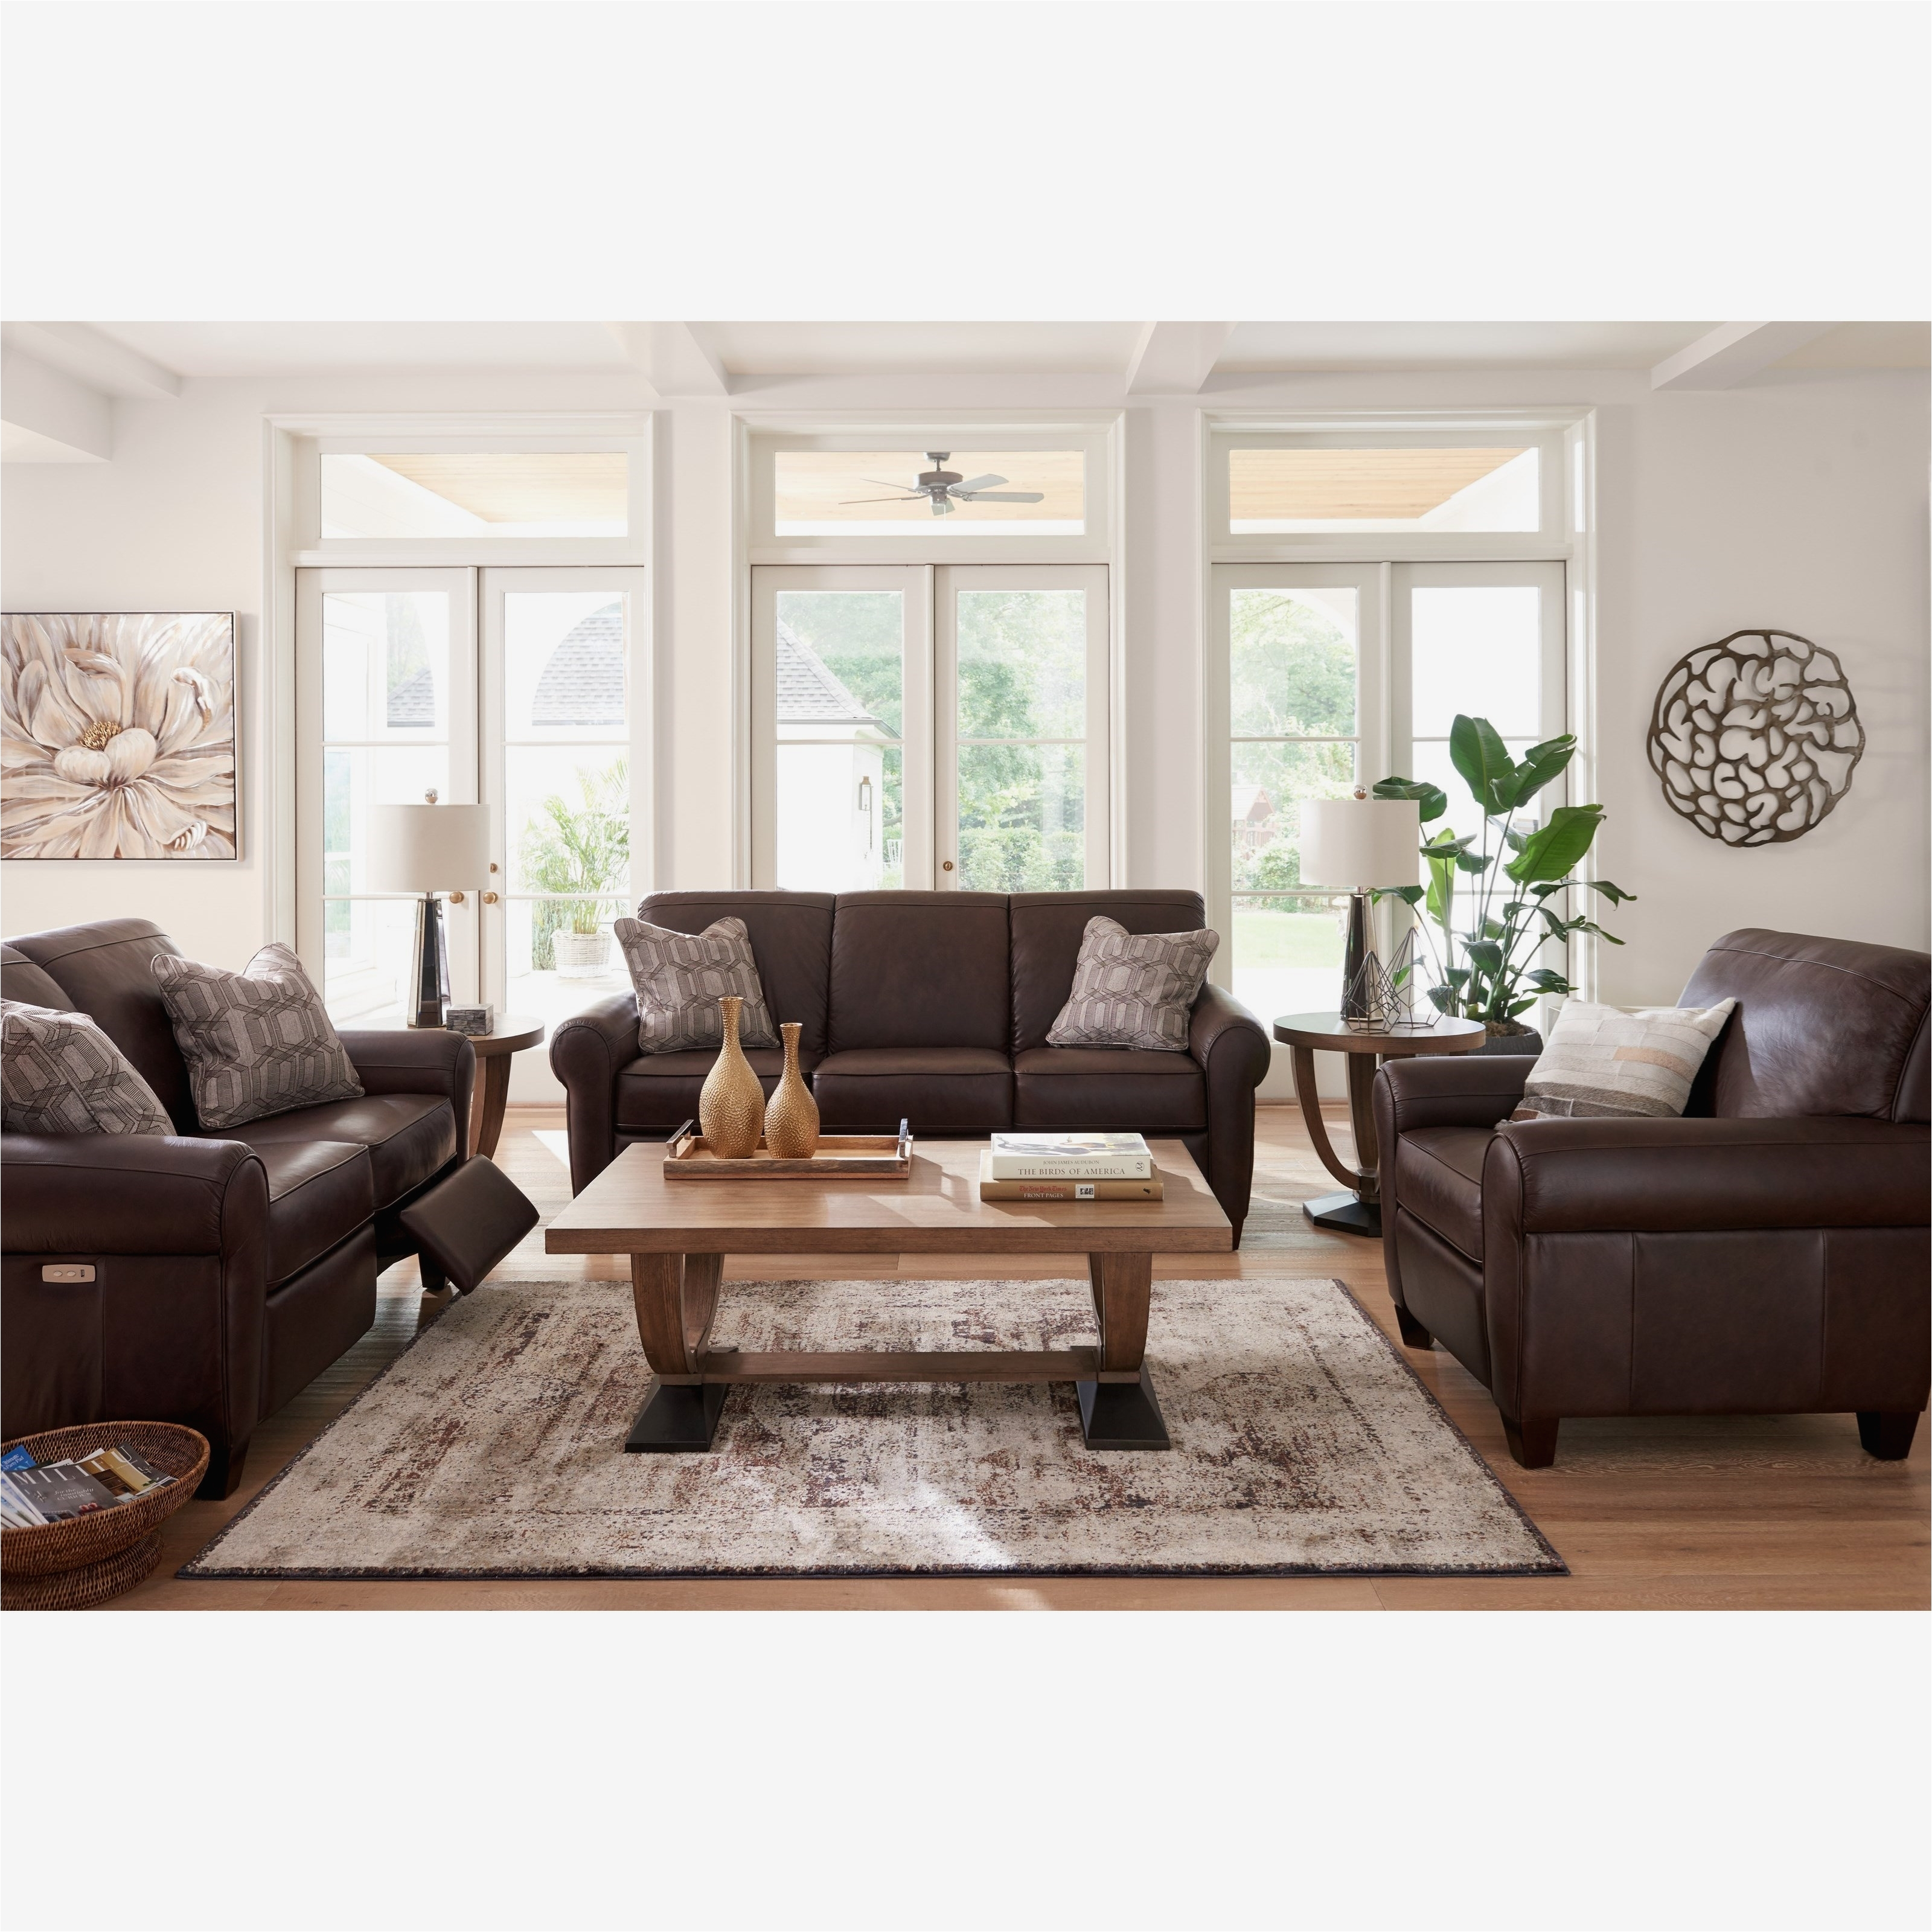 american furniture warehouse coffee tables best of 49 new discount